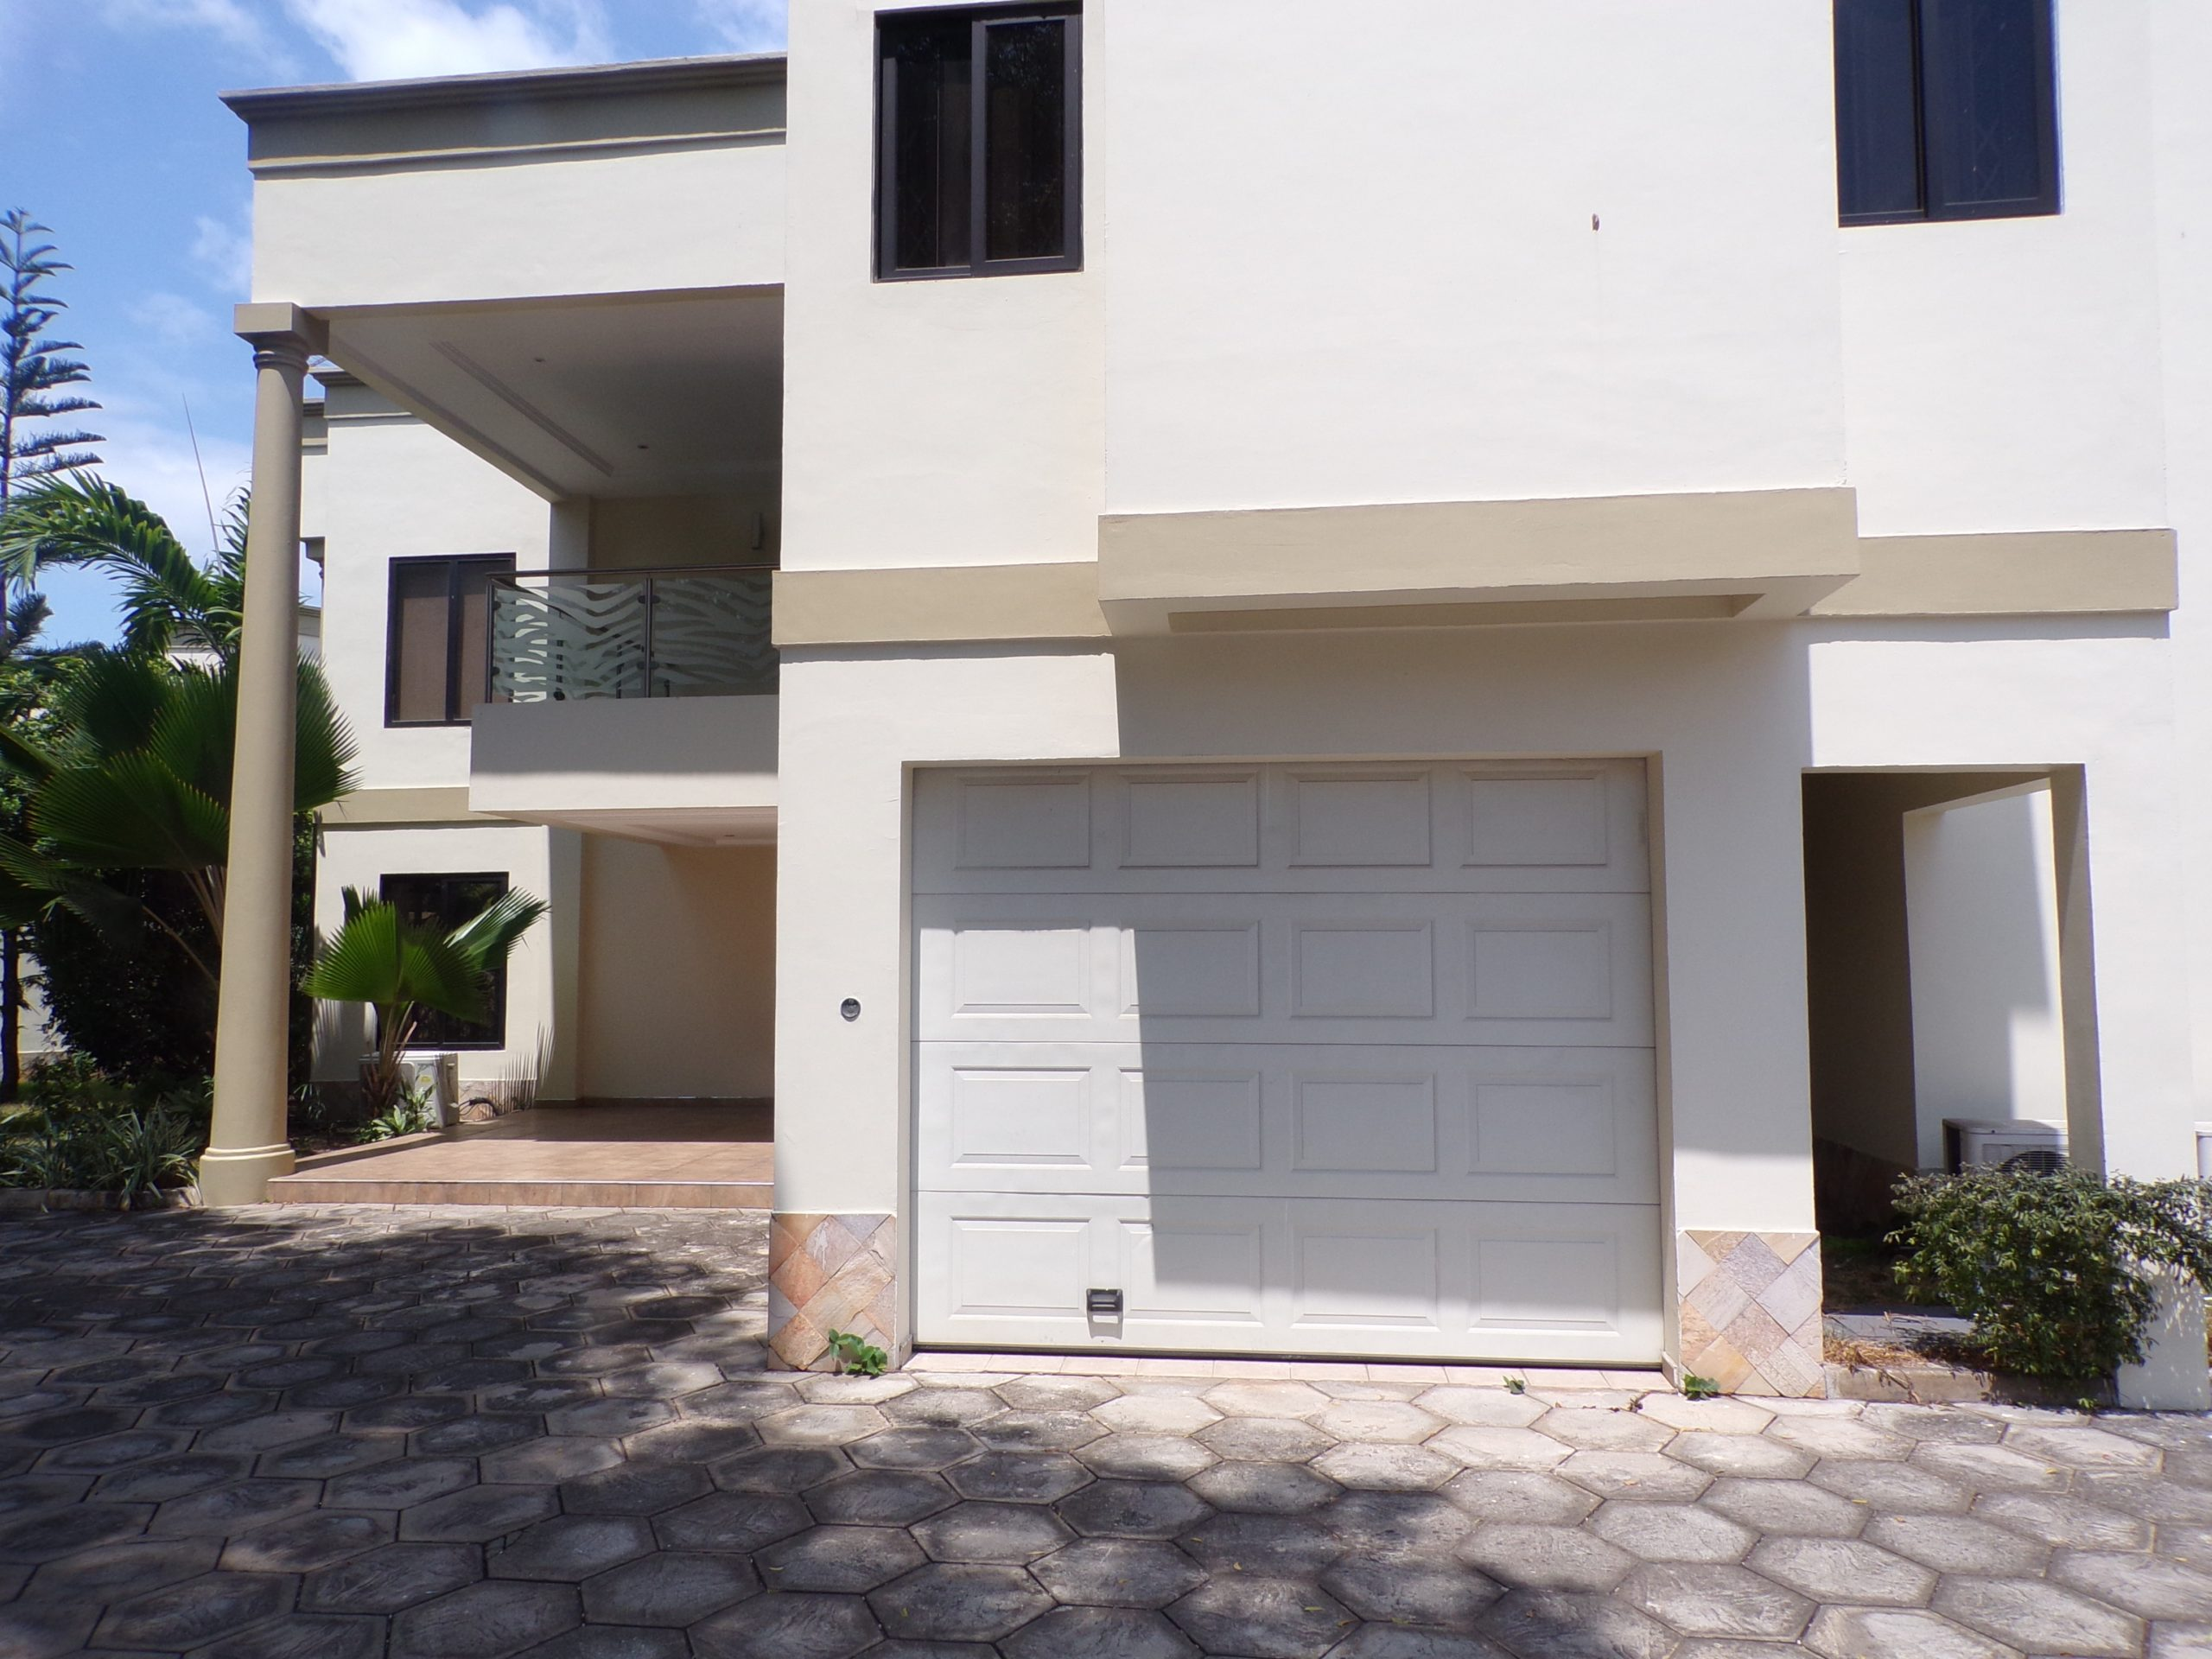 5 BEDROOM UNFURNISHED TOWNHOUSE FOR RENT AT RIDGE